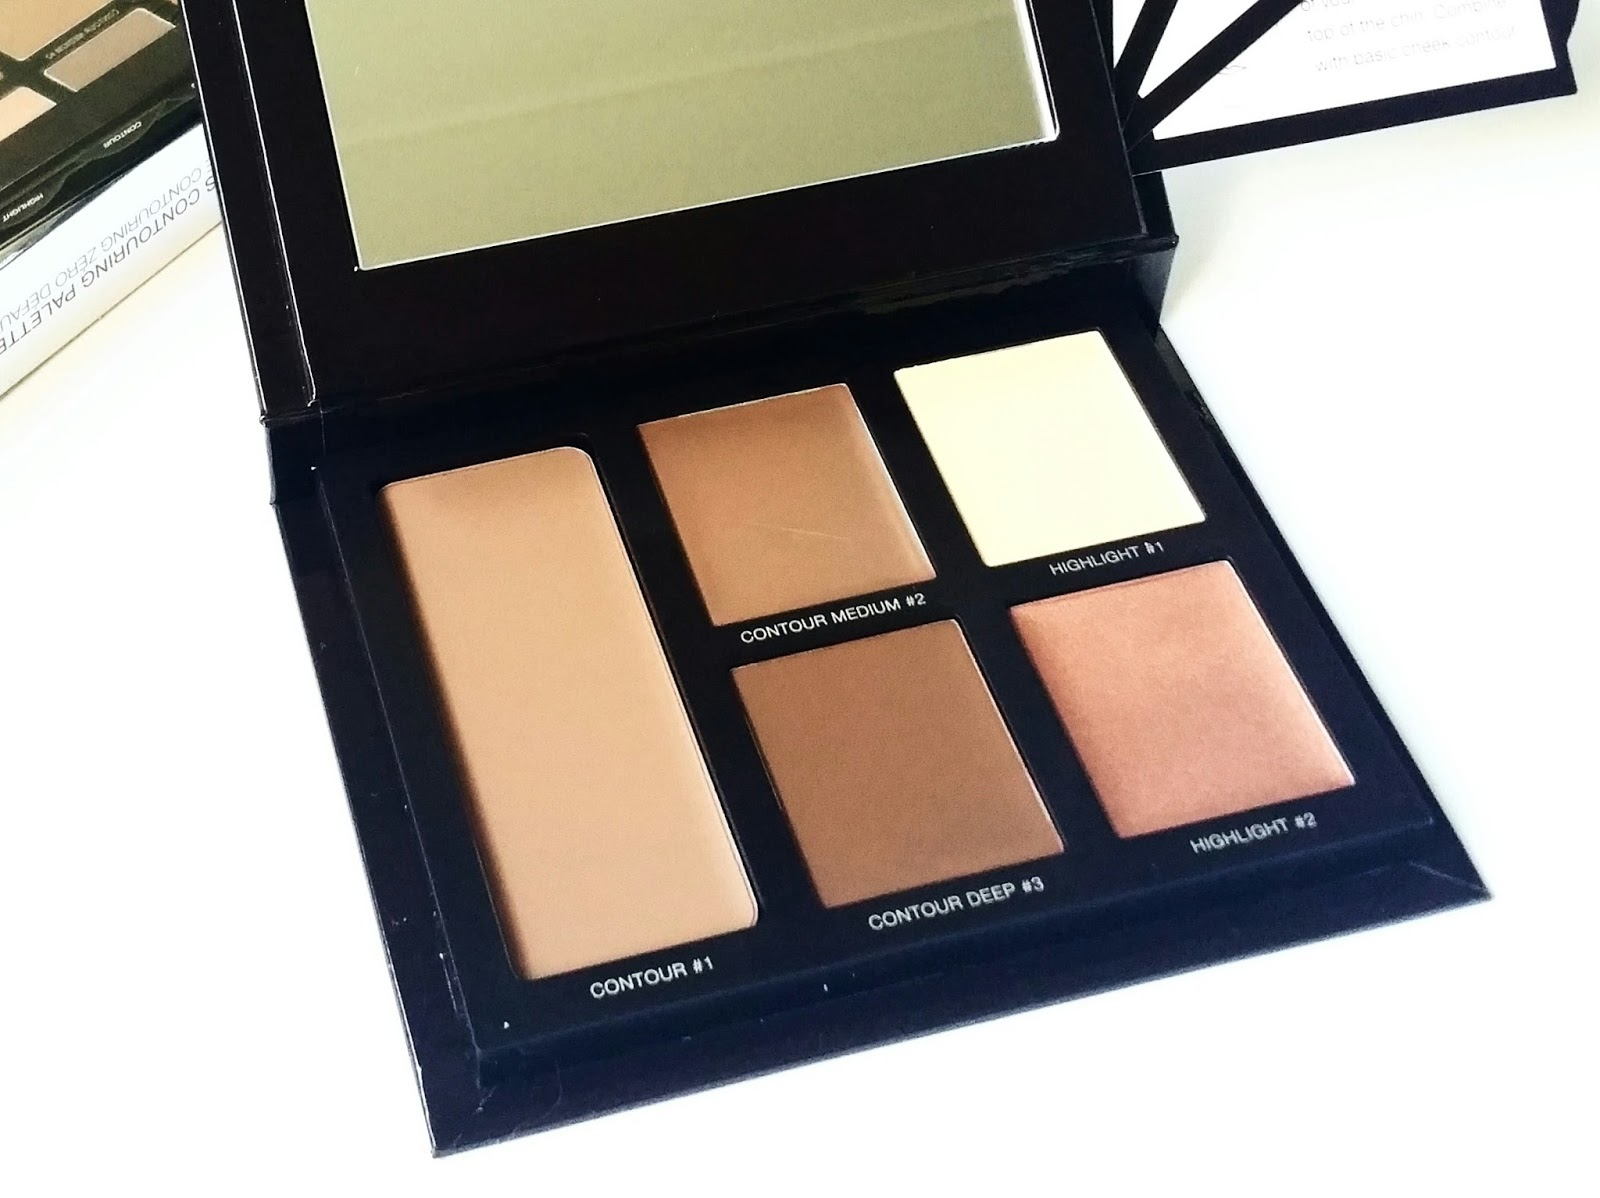 6fac0e78f1a I love that this palette allows you to customise your own shade and they  are highly pigmented with a strong colour payoff - they provide  light-medium to ...